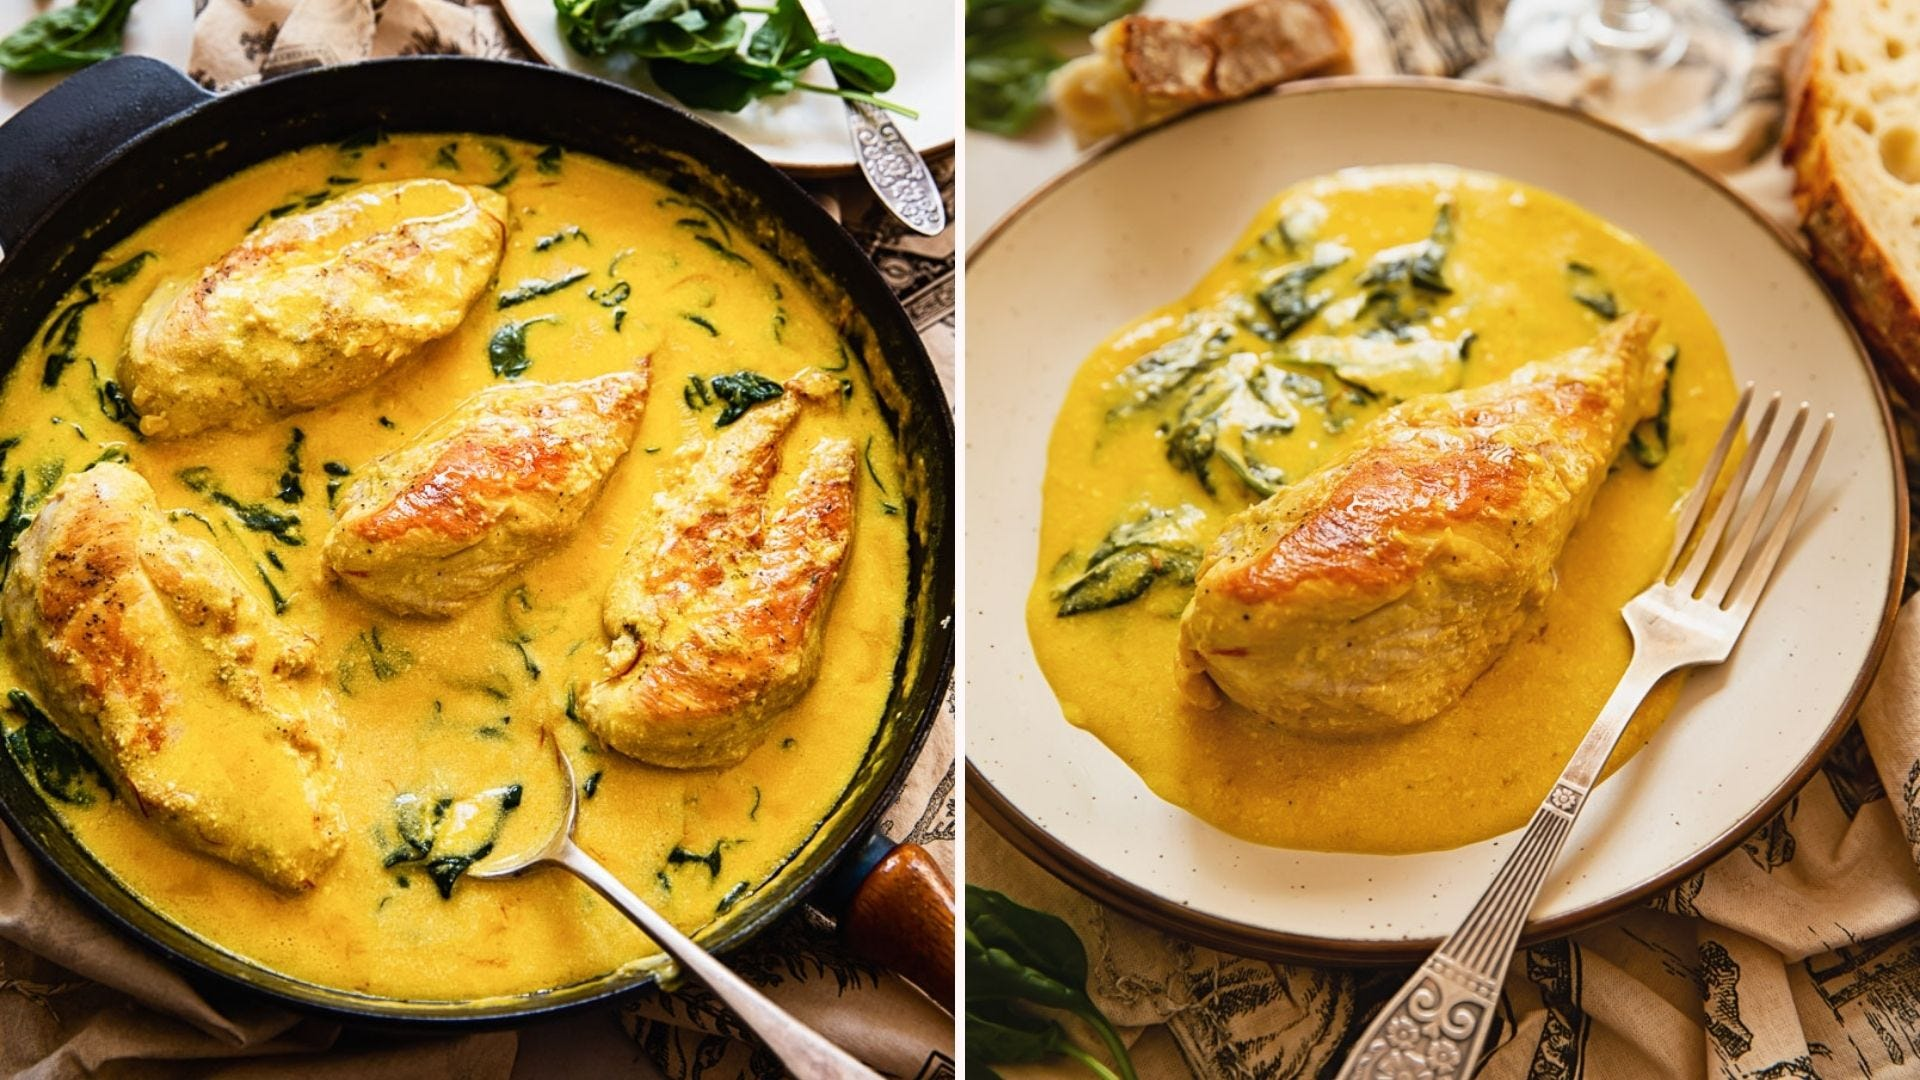 Two images displaying Tuscan chicken with a saffron cream sauce and spinach.